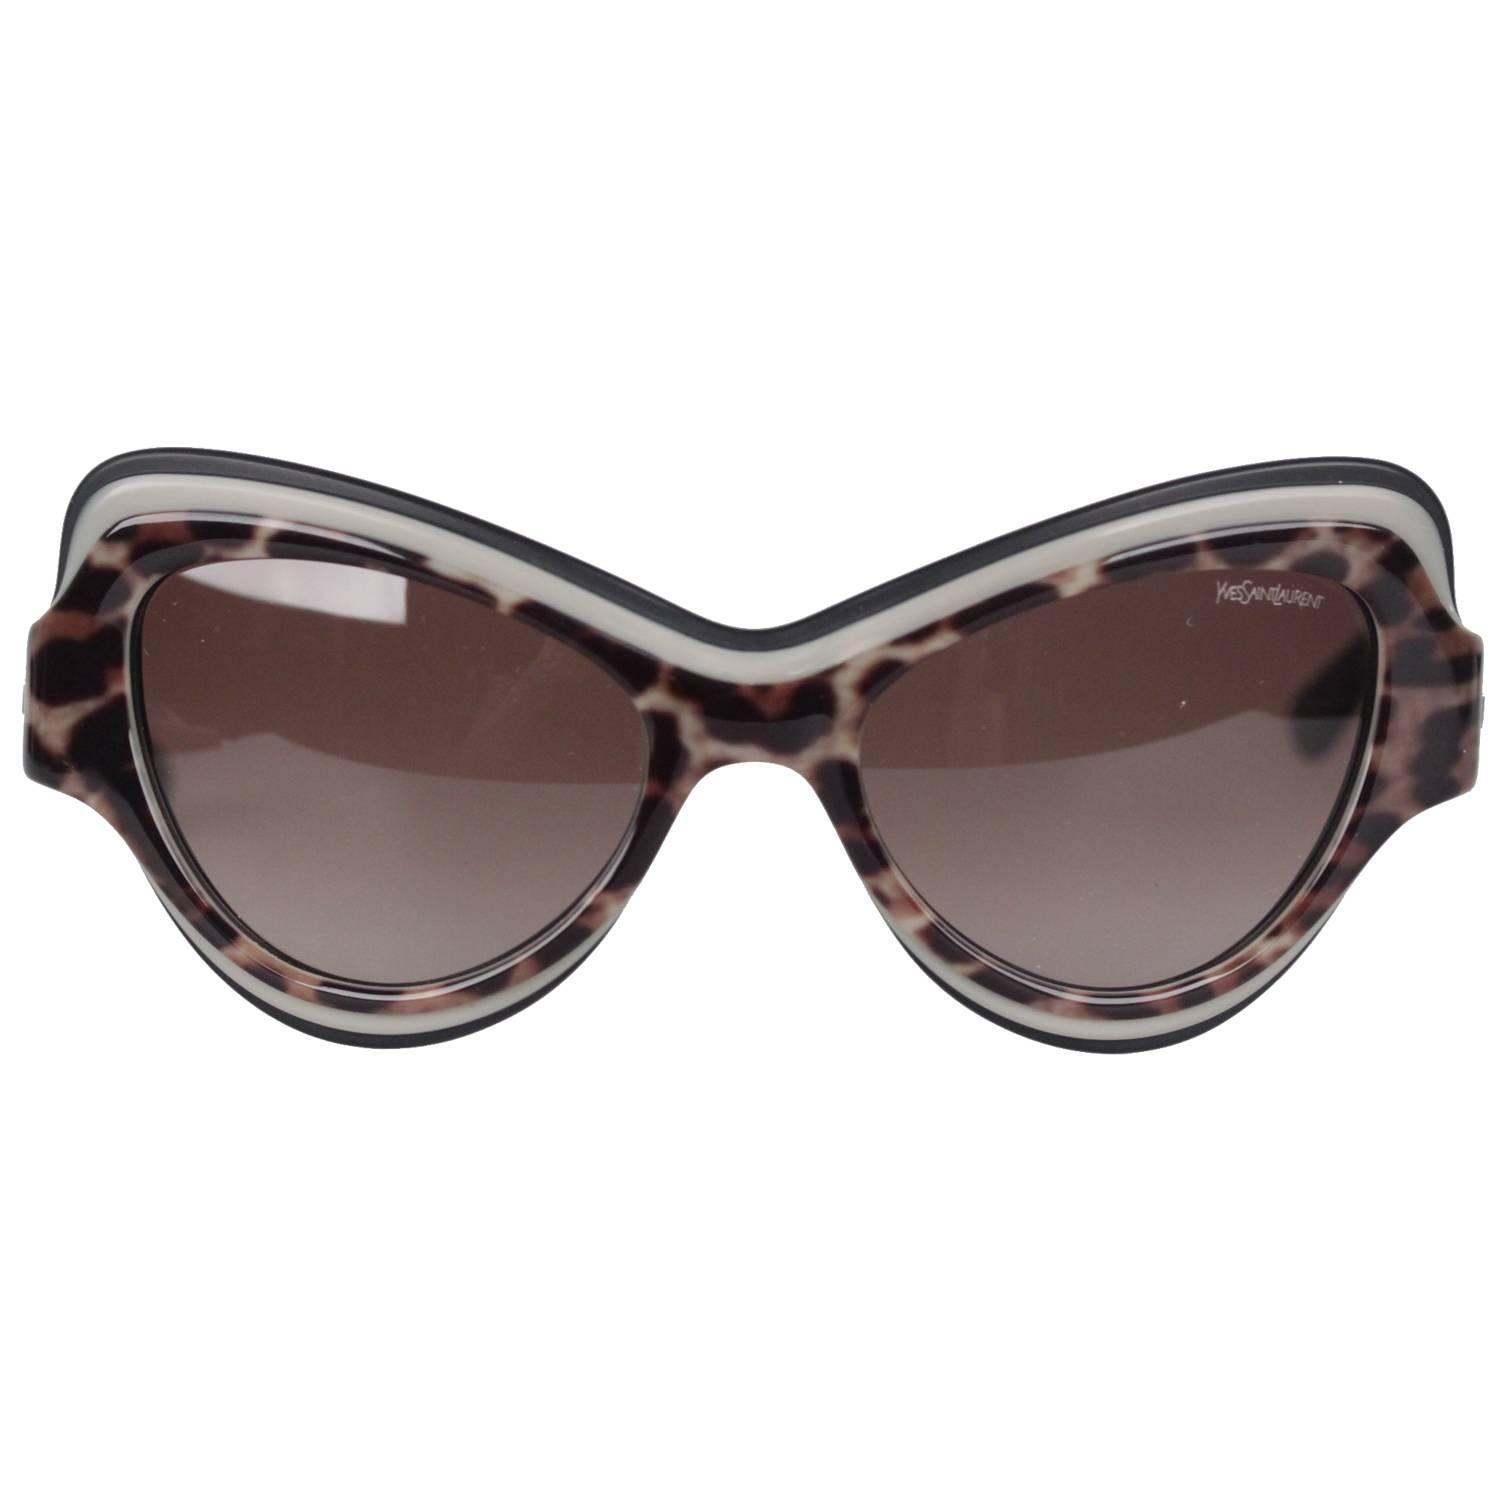 dadee70f89 YVES SAINT LAURENT Cat-Eye Sunglasses YSL 6366 S 53mm 135 MINT and BOXED  For Sale at 1stdibs